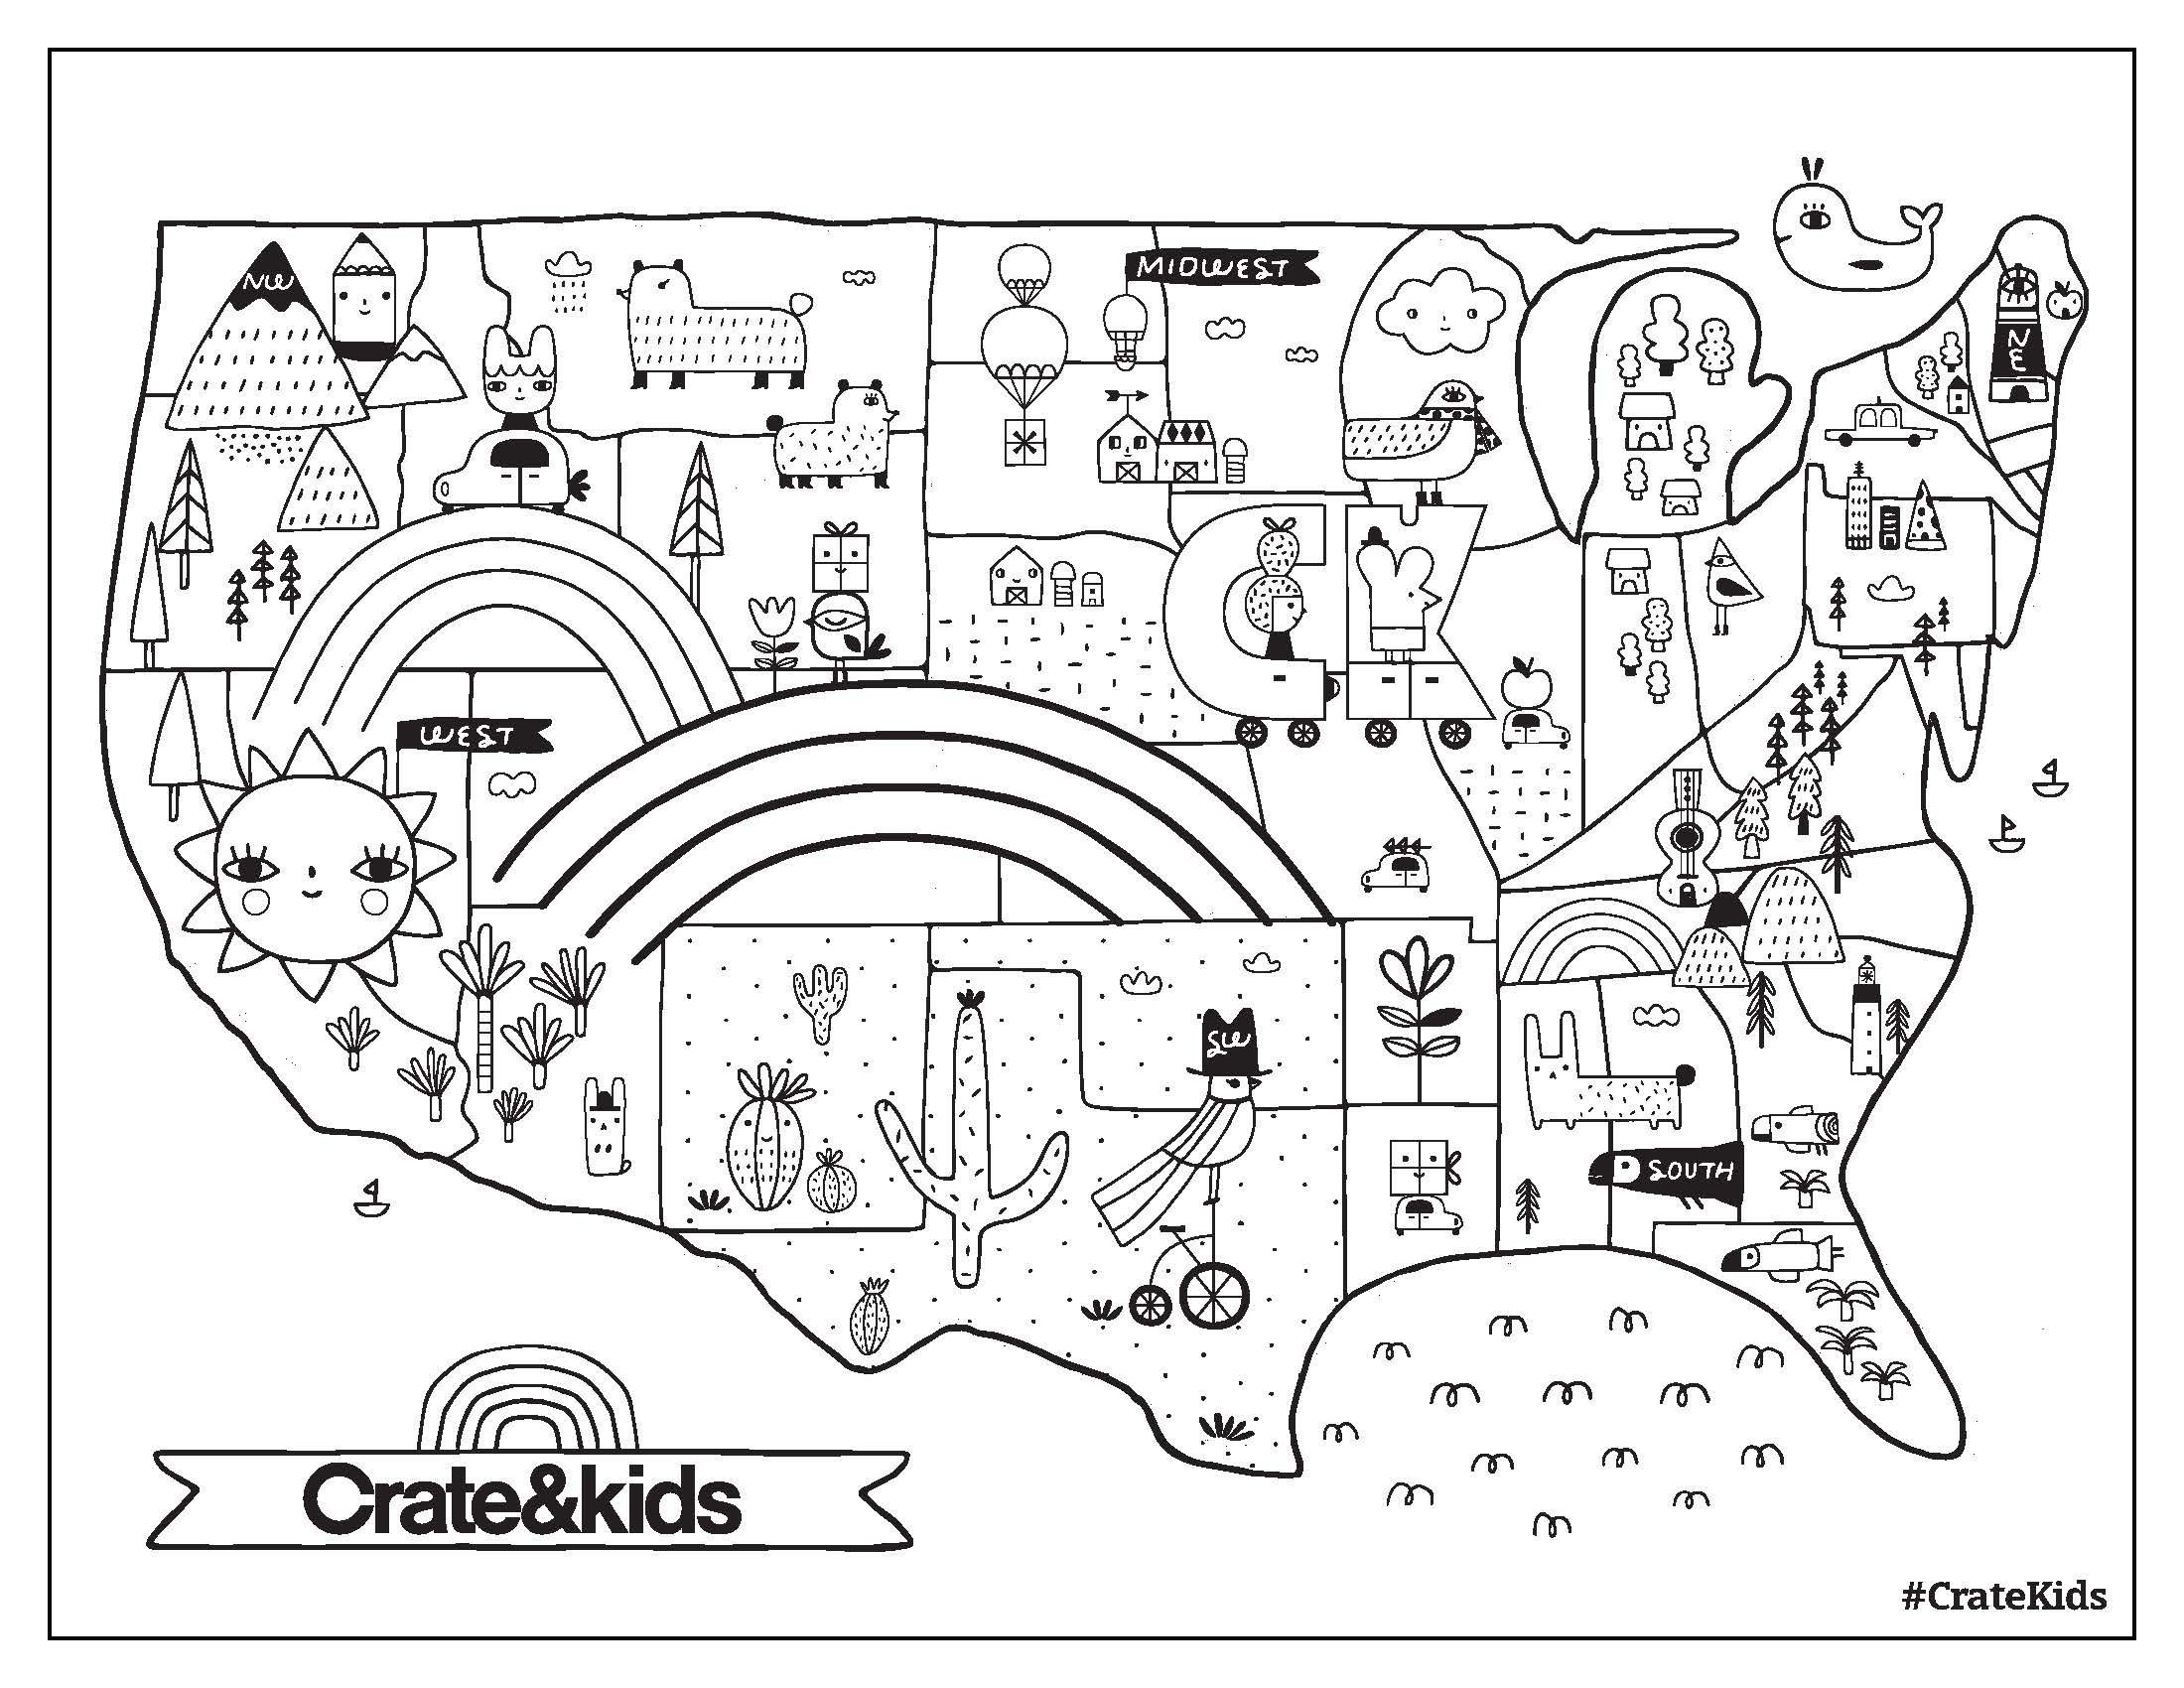 Crate And Kids Free Printable Coloring Page Crate&Kids Blog